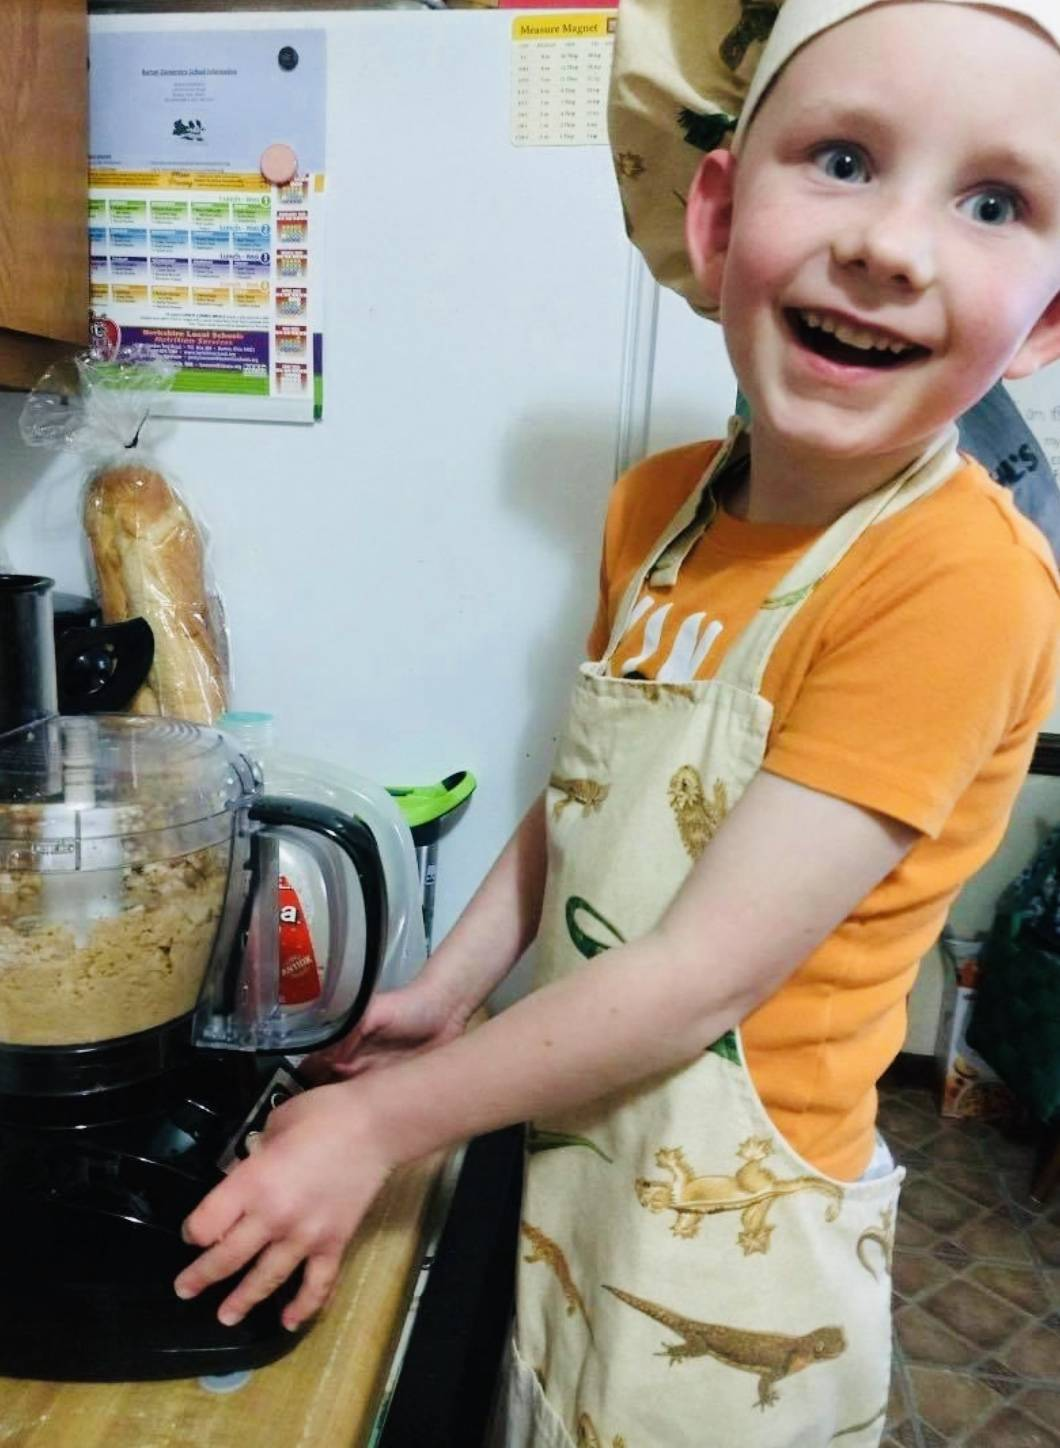 Hunter cooking up some fun!